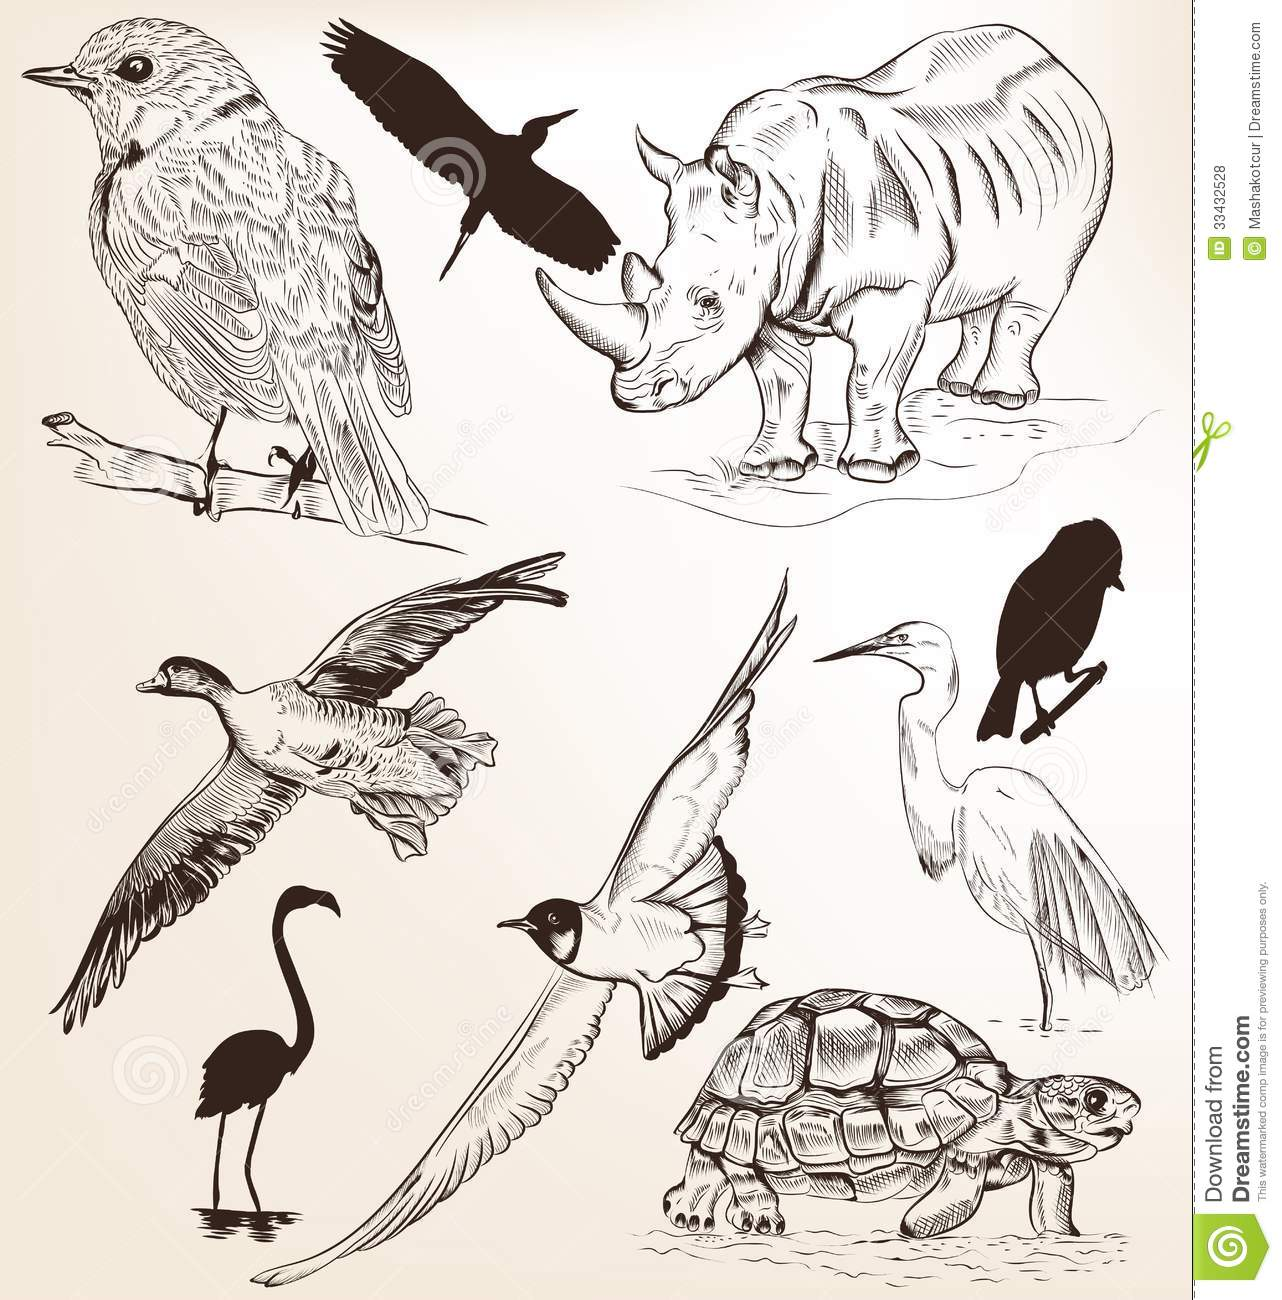 Uncategorized Drawn Pictures Of Animals collection of hand drawn vector detailed animals for design royalty free stock photo